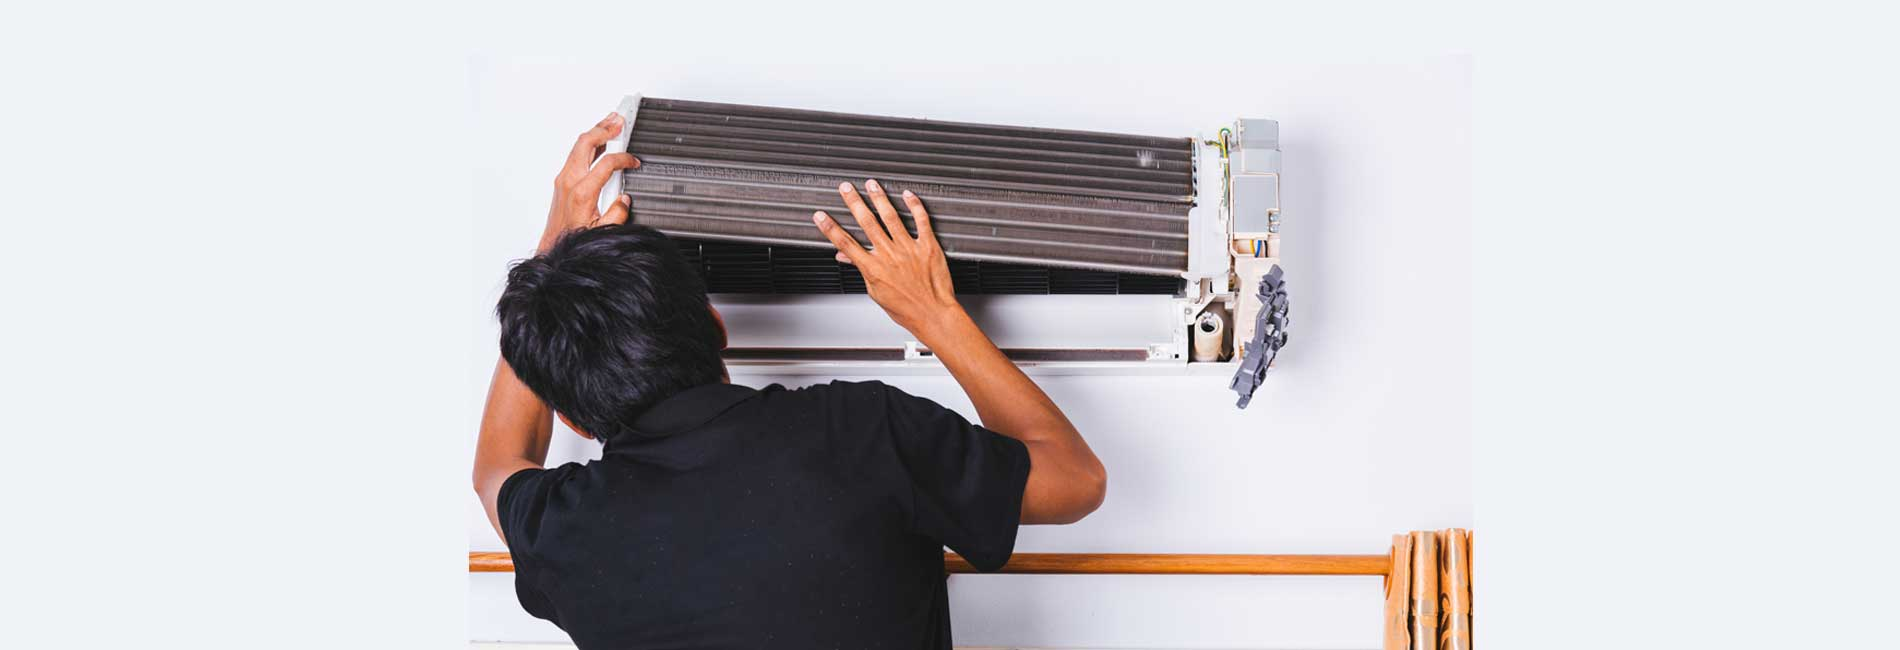 Split AC Uninstallation in Thoraipakkam